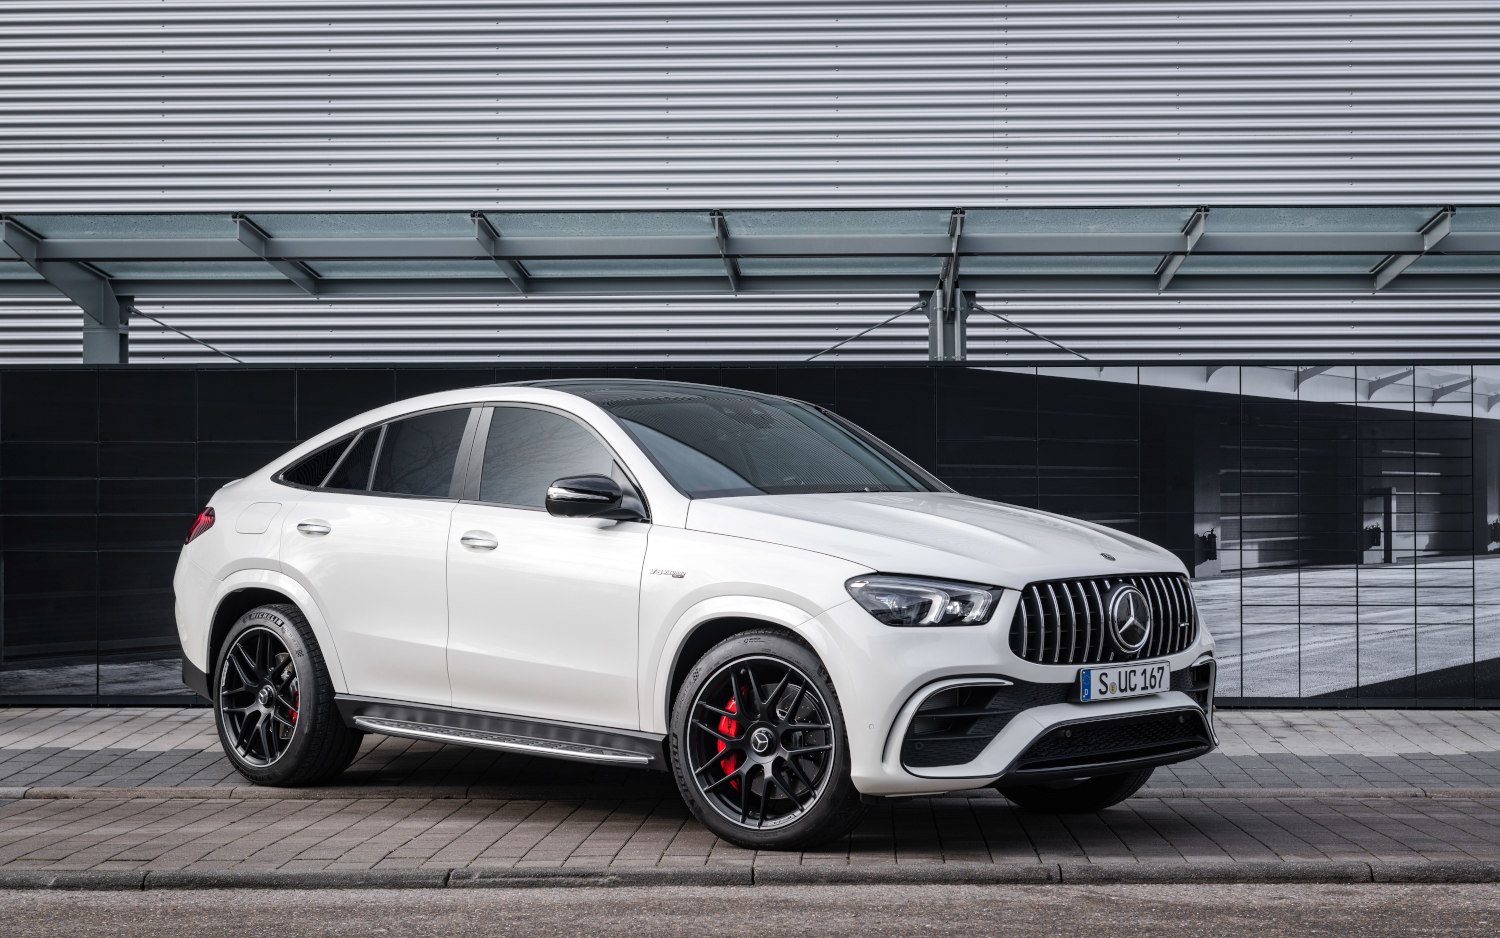 Comparison Mercedes Amg Gle63 S Coupe 2021 Vs Mercedes Benz Gle Class Coupe Amg Gle 63 S 2019 Suv Drive